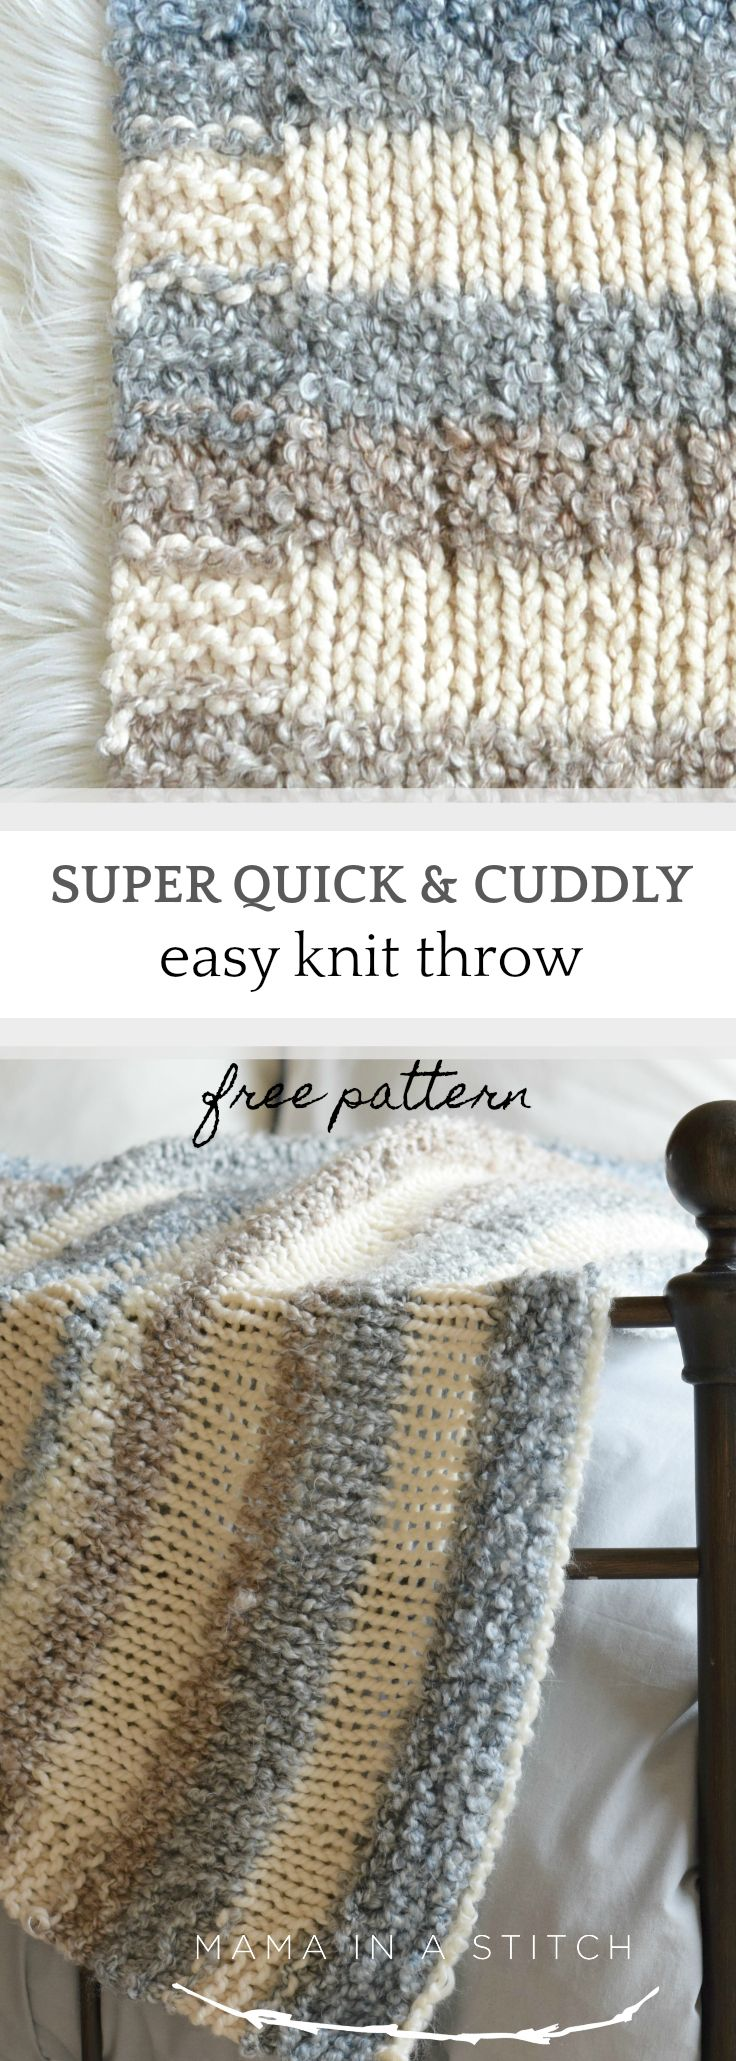 Cuddly Quick Knit Throw Blanket Pattern | Knitting/crocheting ...